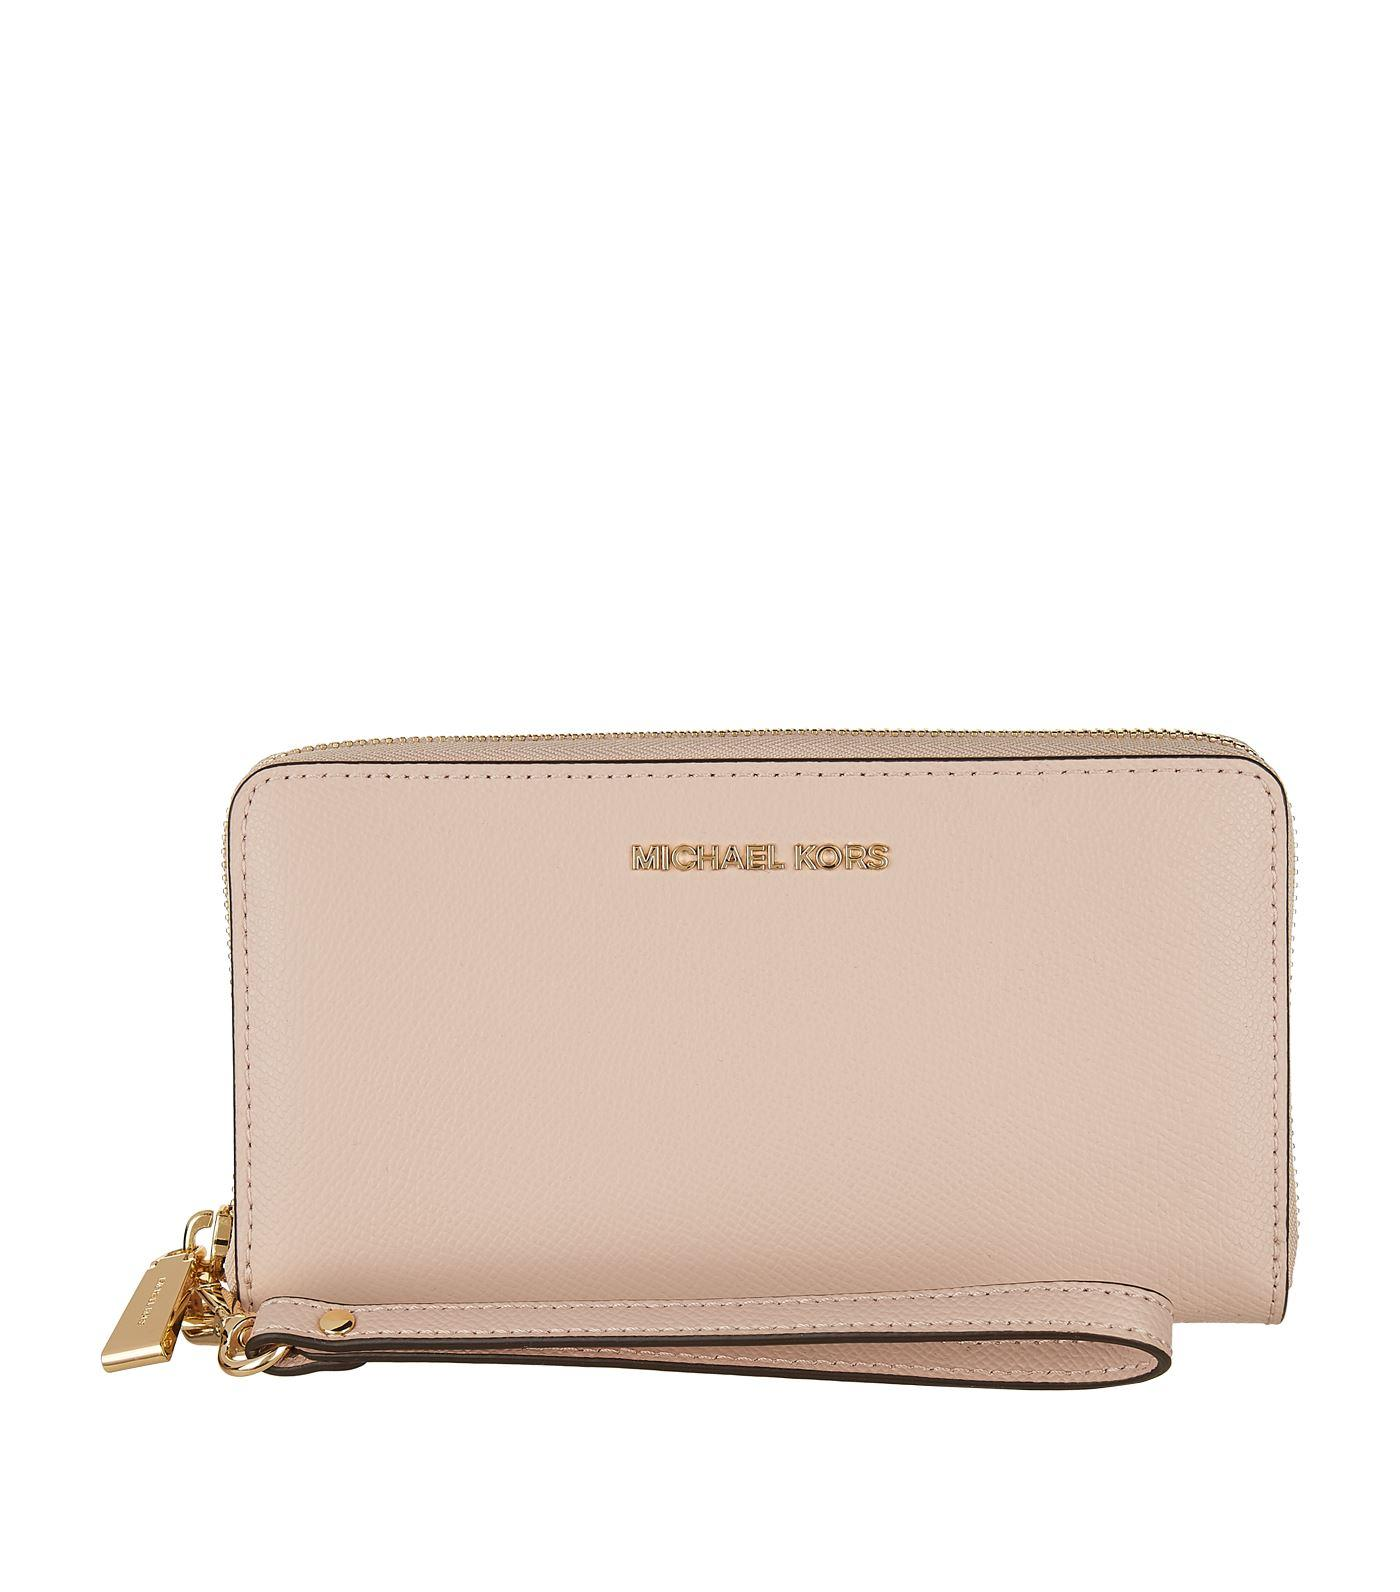 5ac87c6b1f7f Lyst - MICHAEL Michael Kors Leather Wristlet Wallet in Pink - Save ...